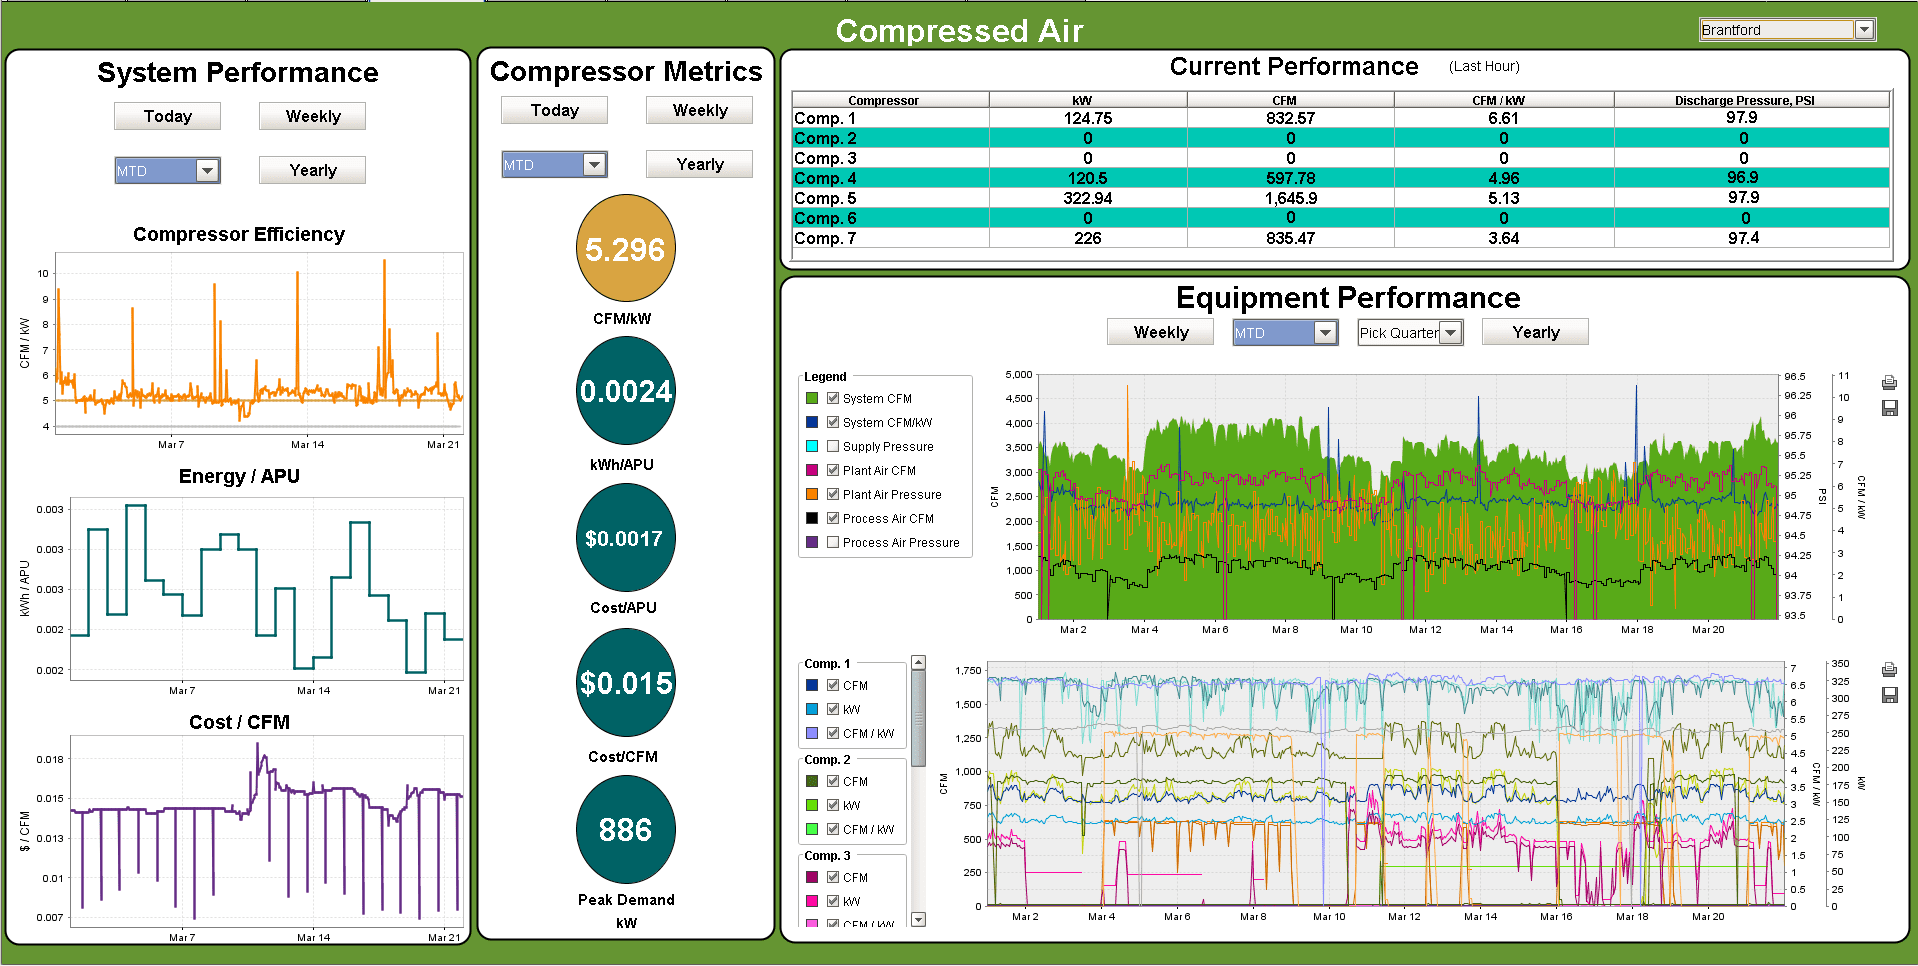 Enpowered Solutions Compressed Air System KPI Reporting software